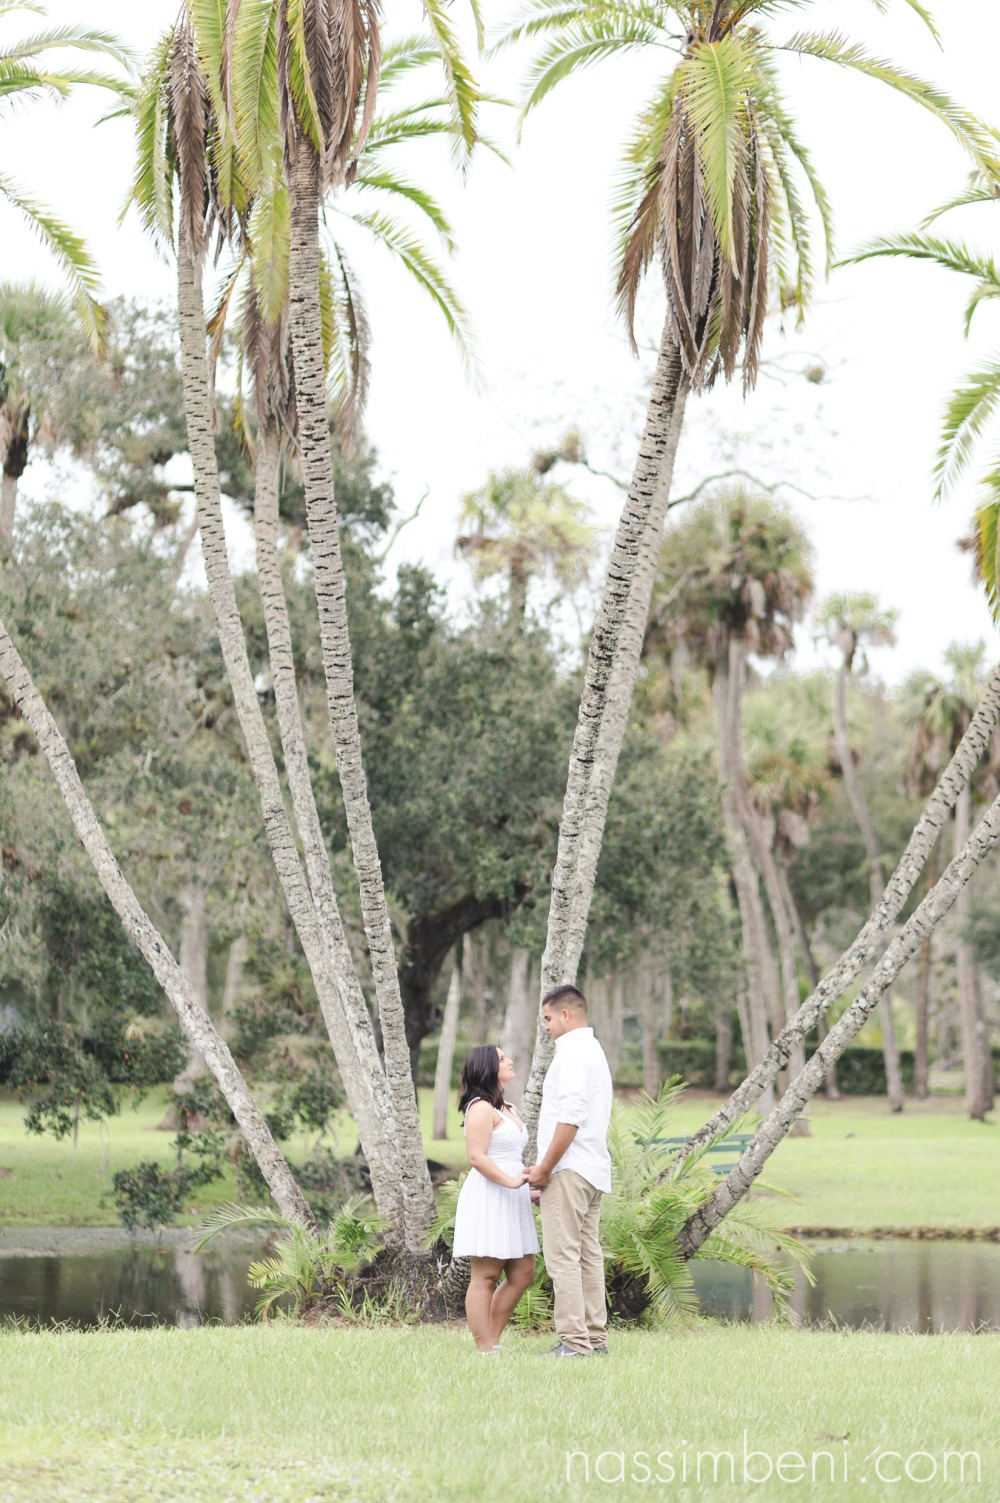 White City Park engagement photos by Treasure Coast Photographer, Nassimbeni Photography